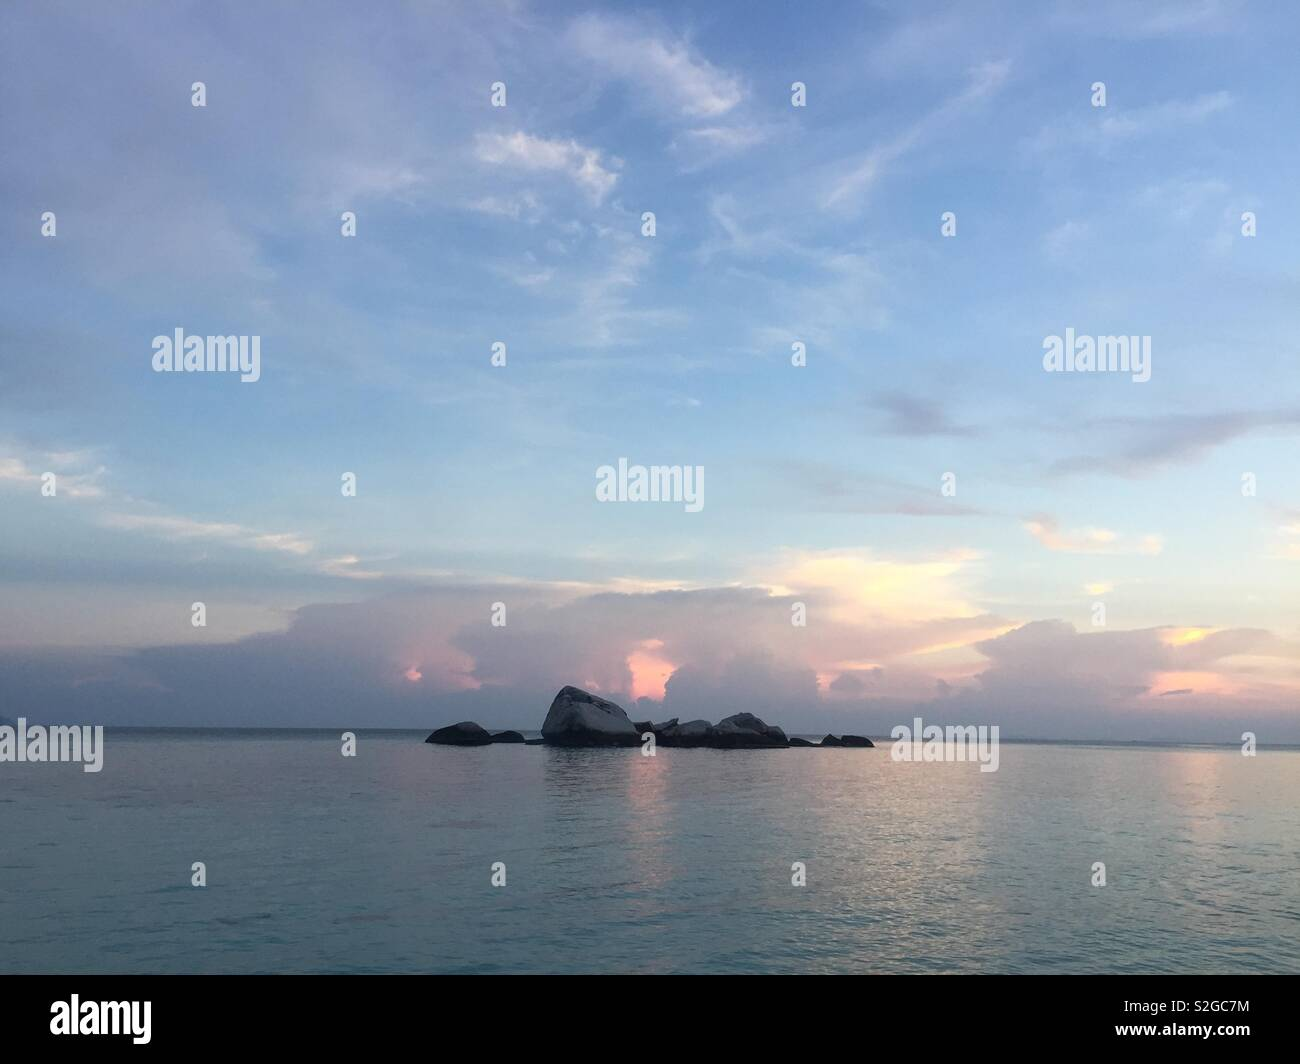 Small rocky island in the South China Sea during sunset. - Stock Image